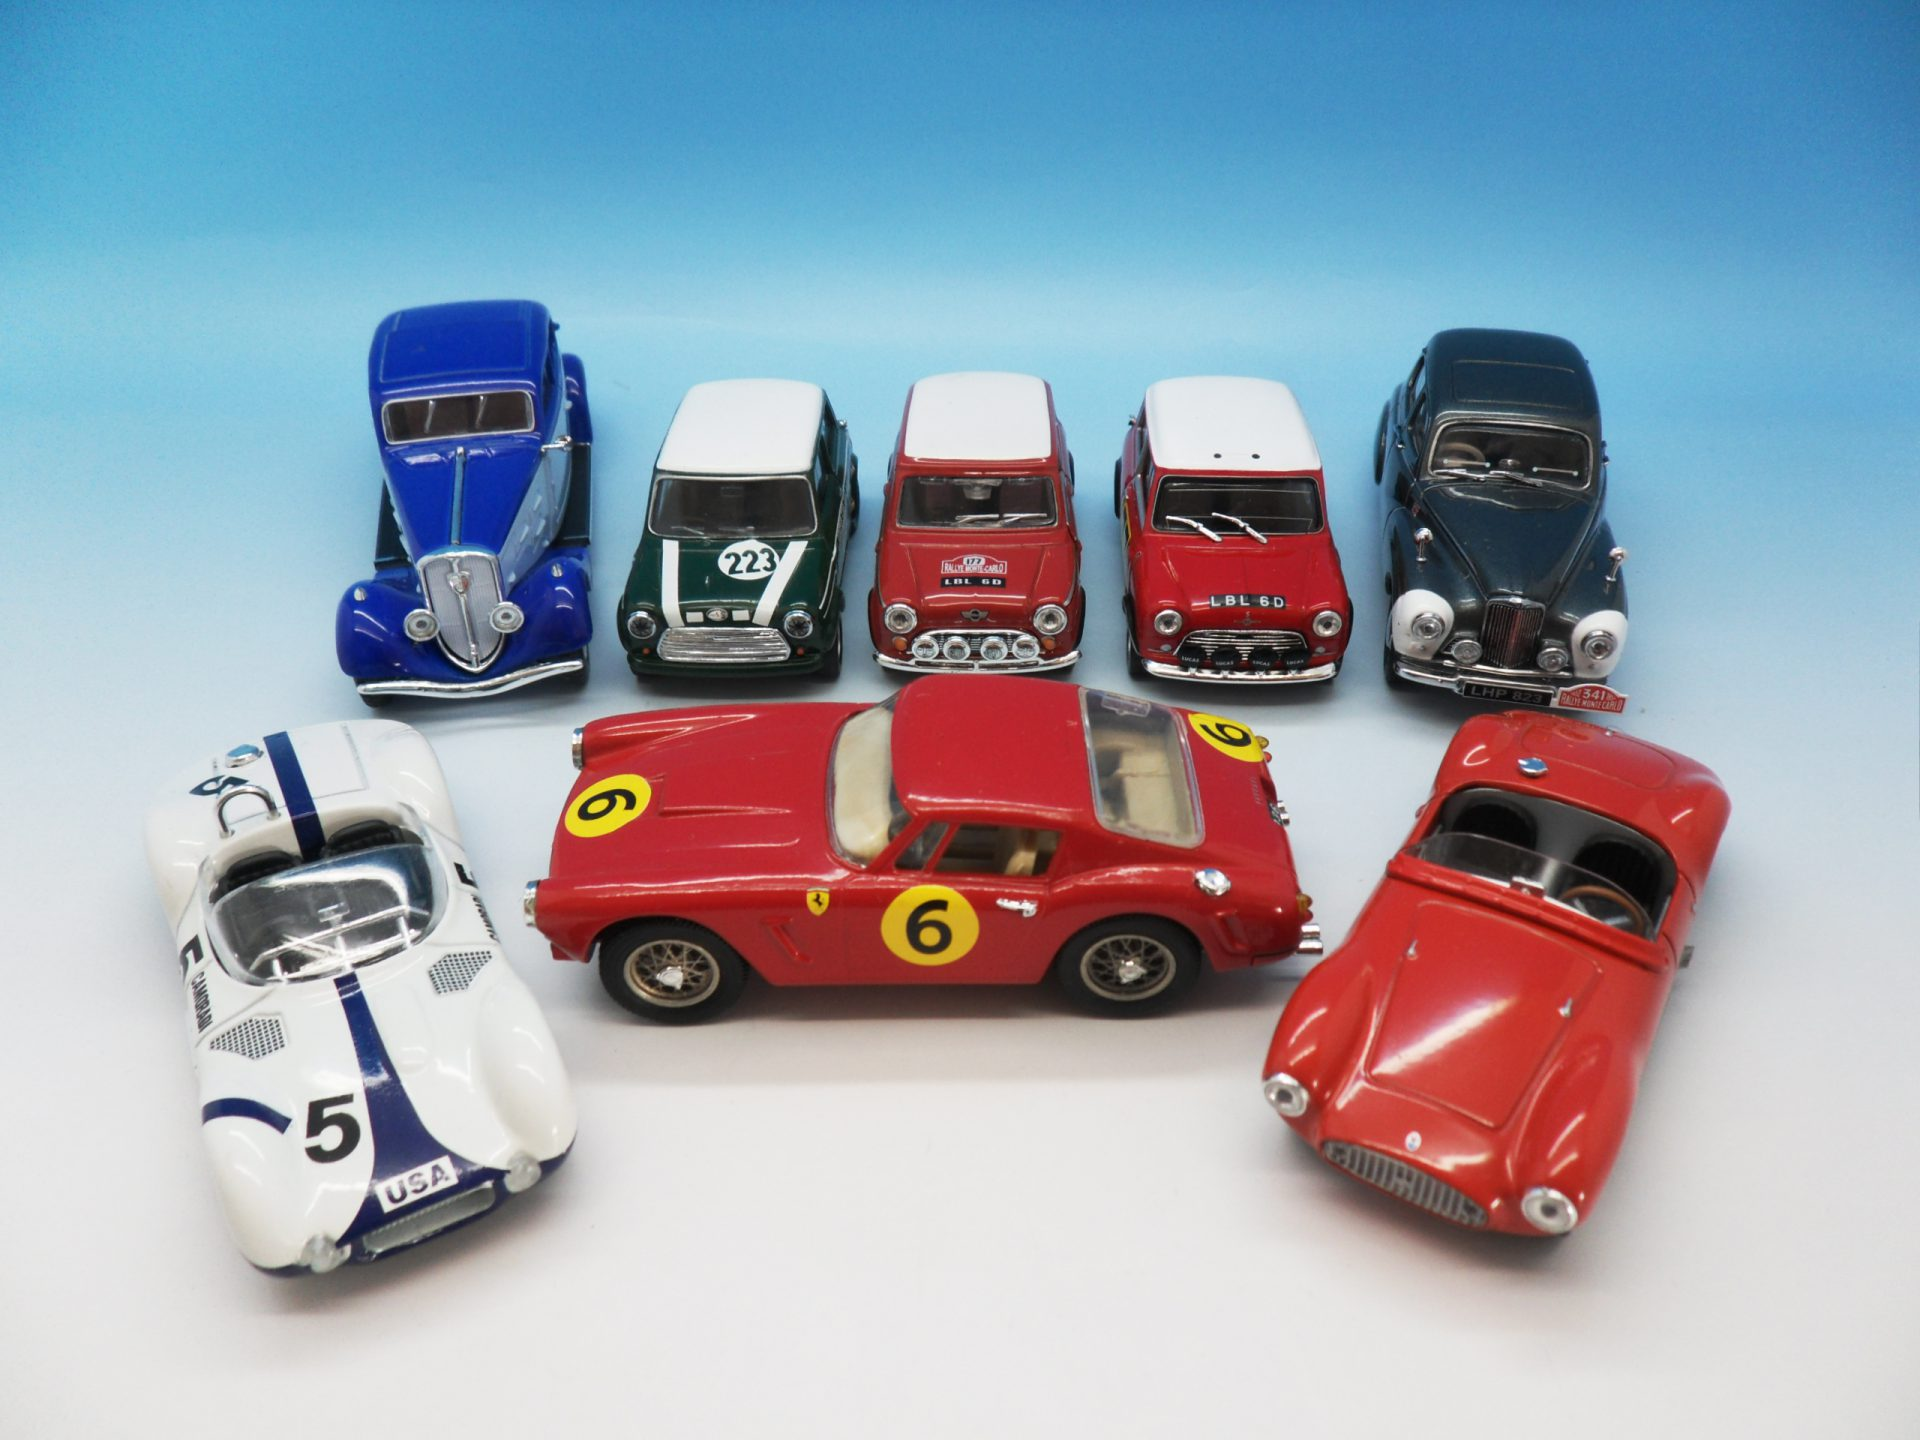 Unboxed Diecast Models